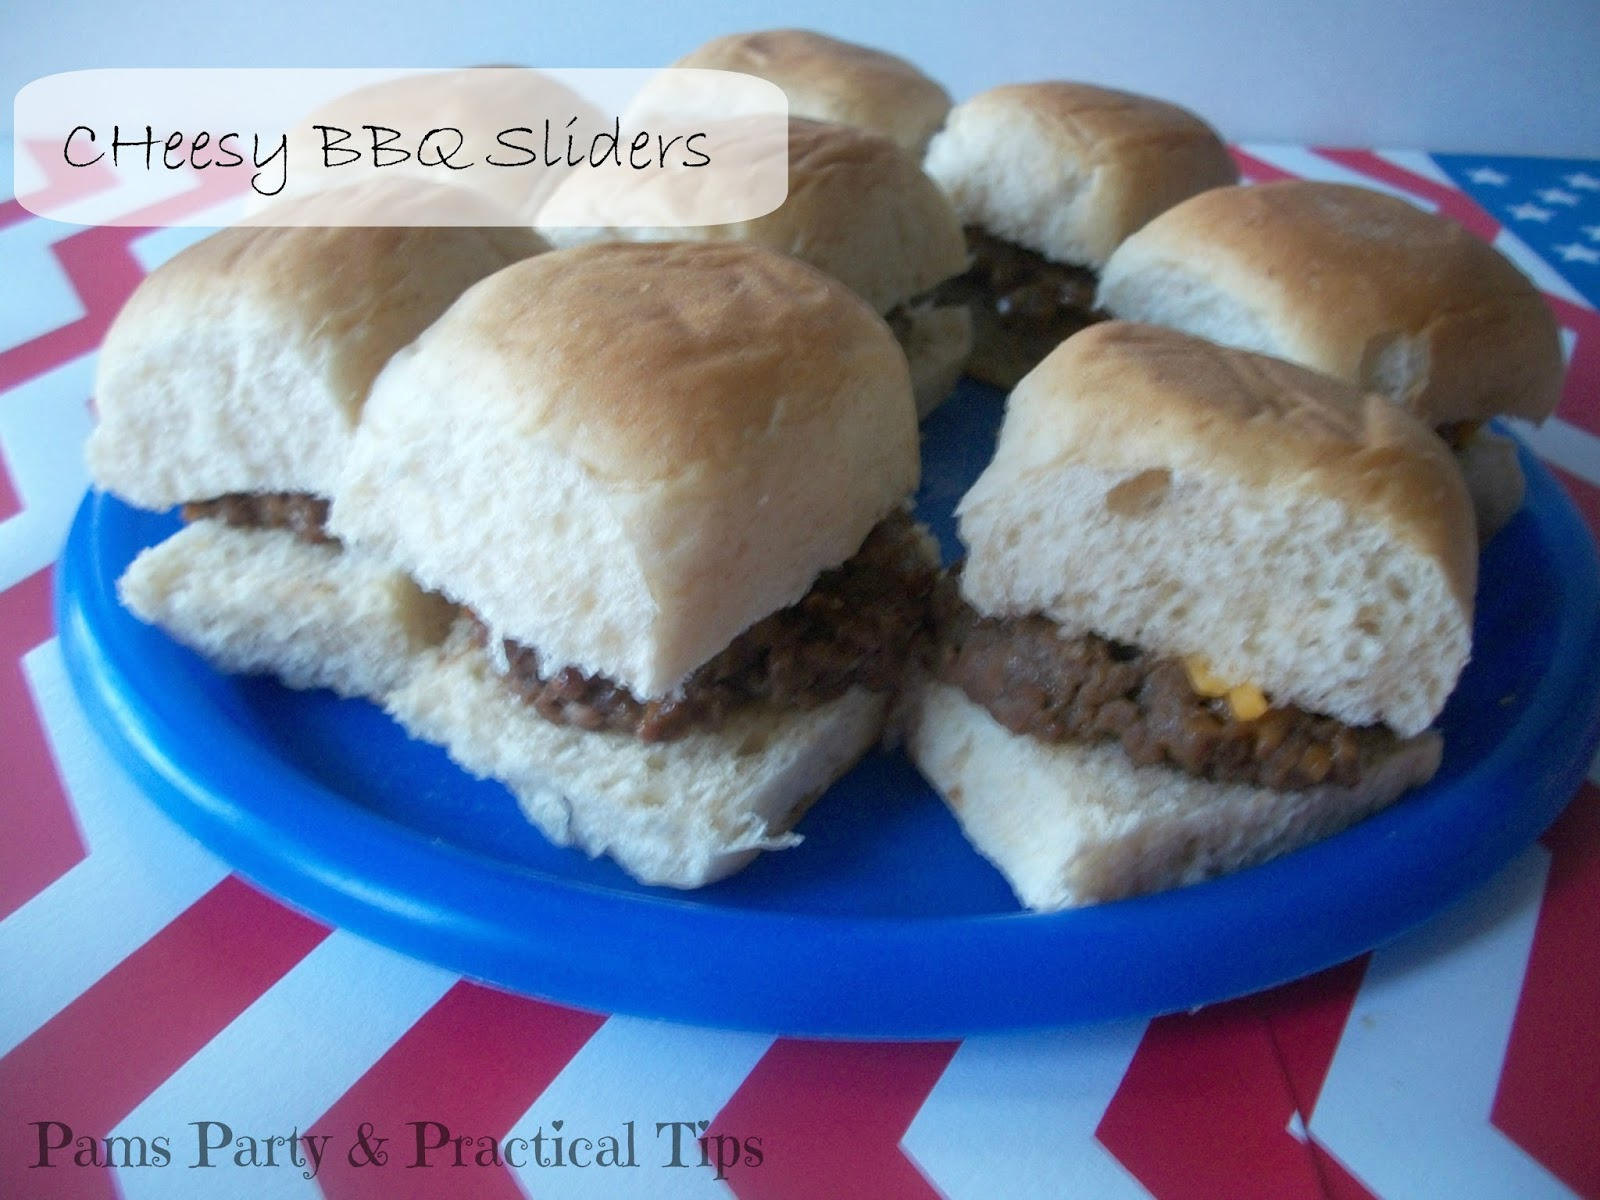 Cheesy  BBQ Sliders, Mini Burgers